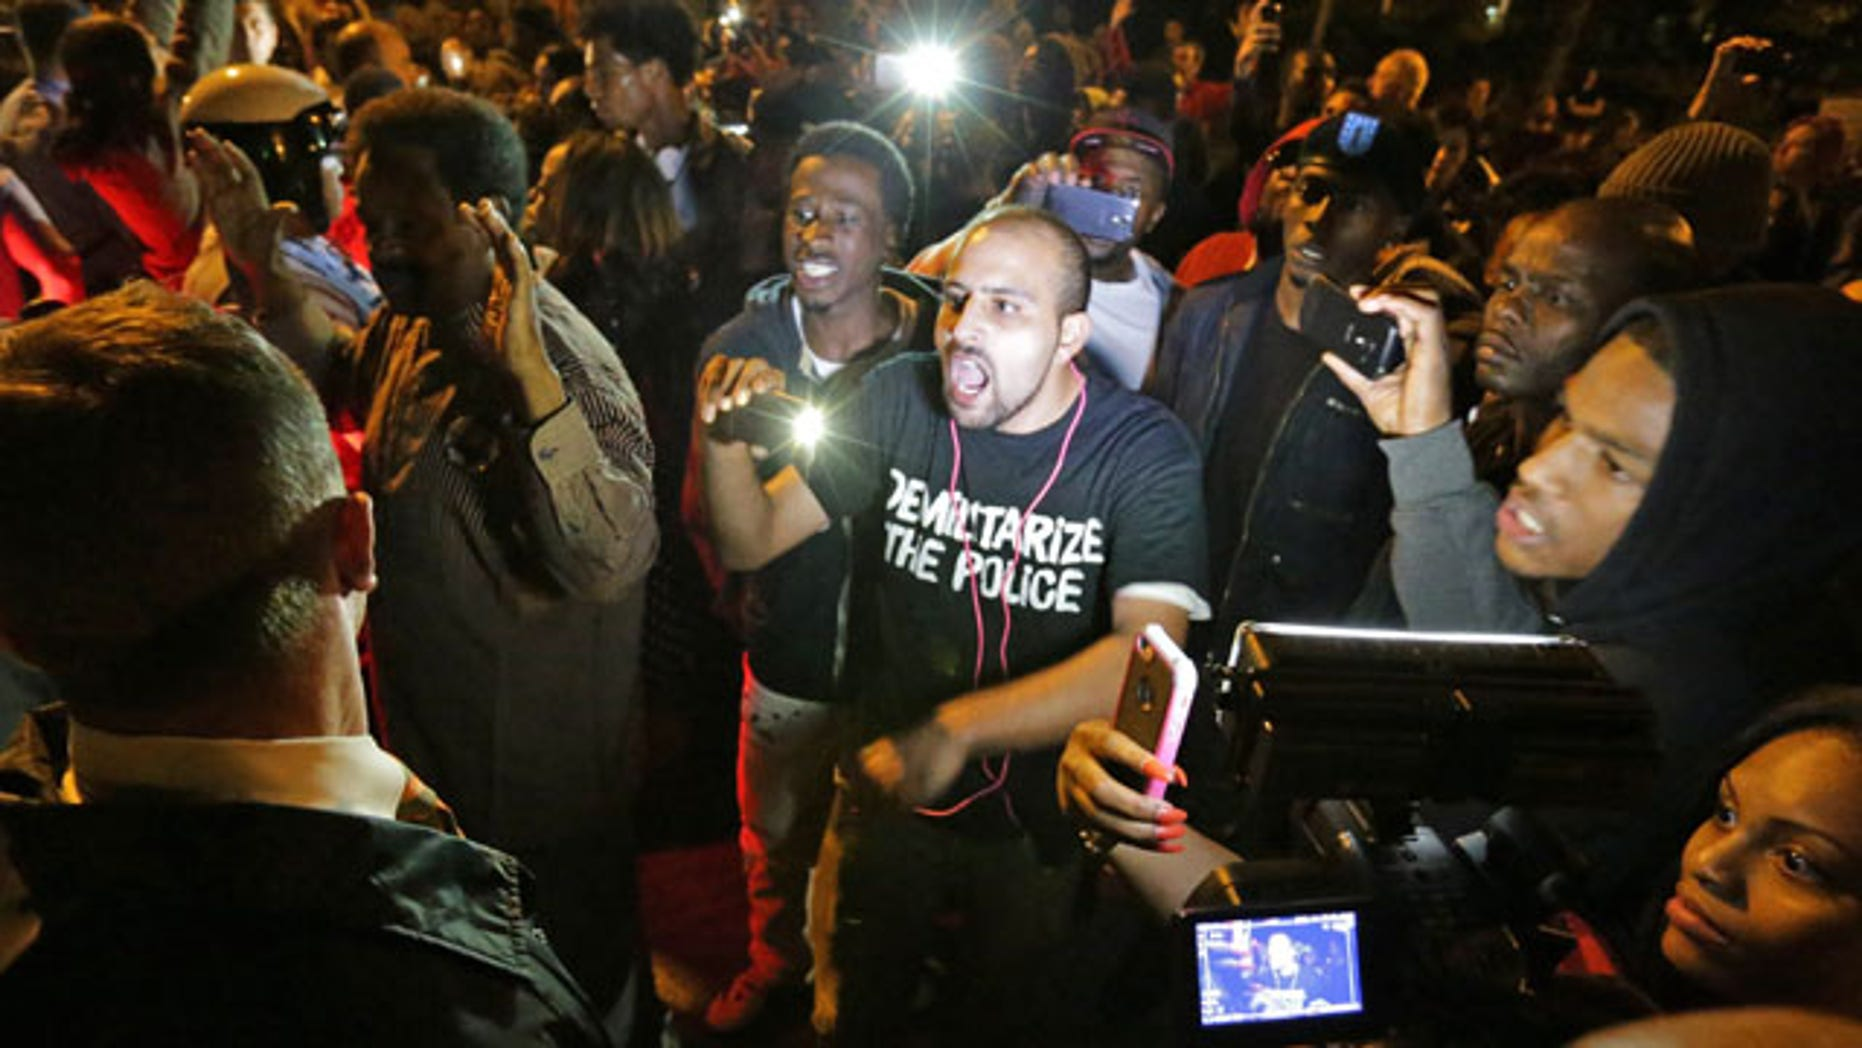 October 8, 2014: Crowds confront police near the scene in in south St. Louis where a man was fatally shot by an off-duty St. Louis police officer. St. Louis Police Lt. Col. Alfred Adkins said the 32-year-old officer was working a secondary security job late Wednesday when the shooting happened. (AP Photo/St. Louis Post-Dispatch, David Carson)